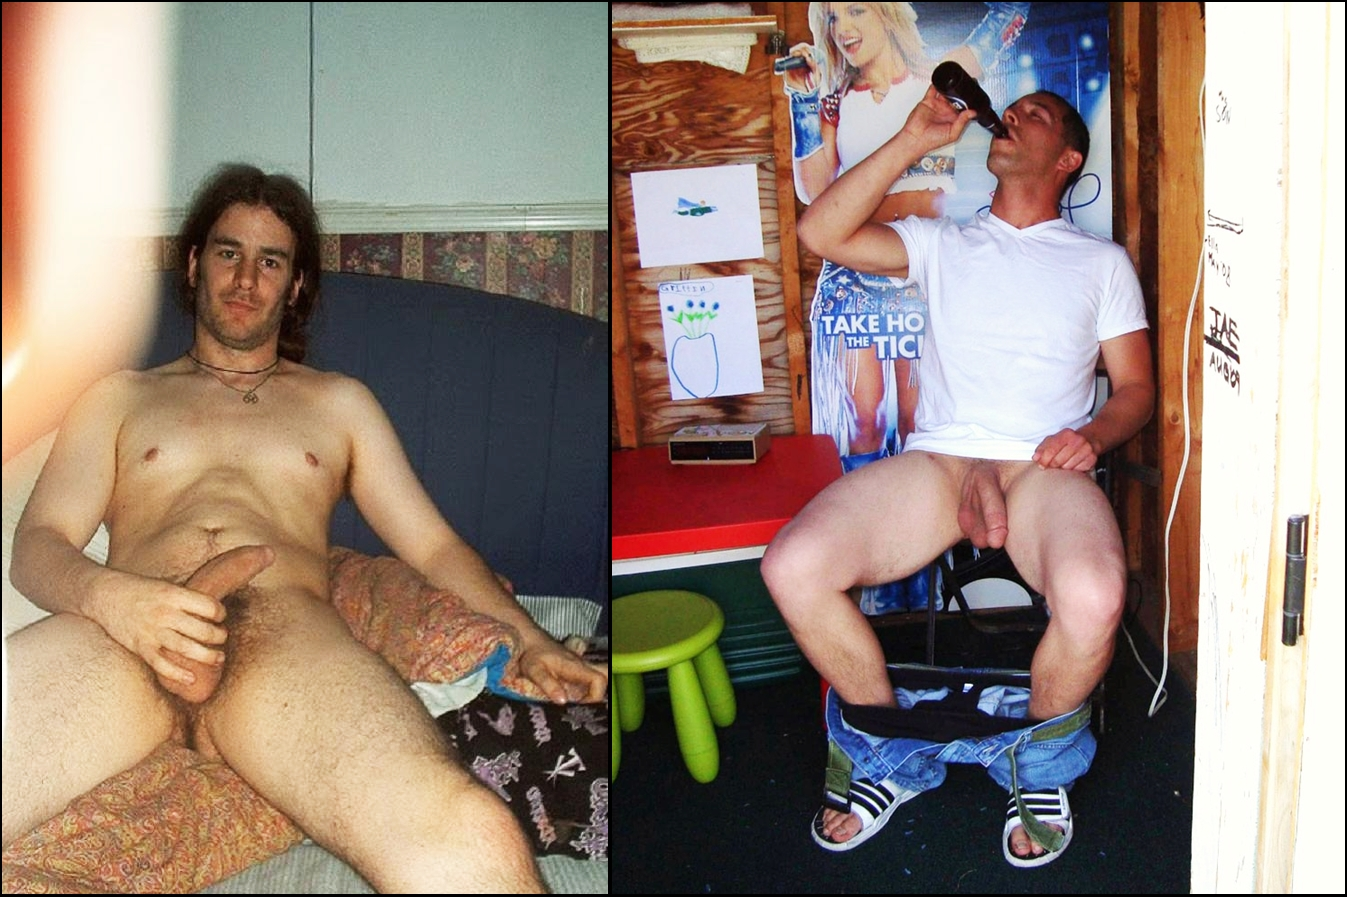 Photos of nacked white trash men important